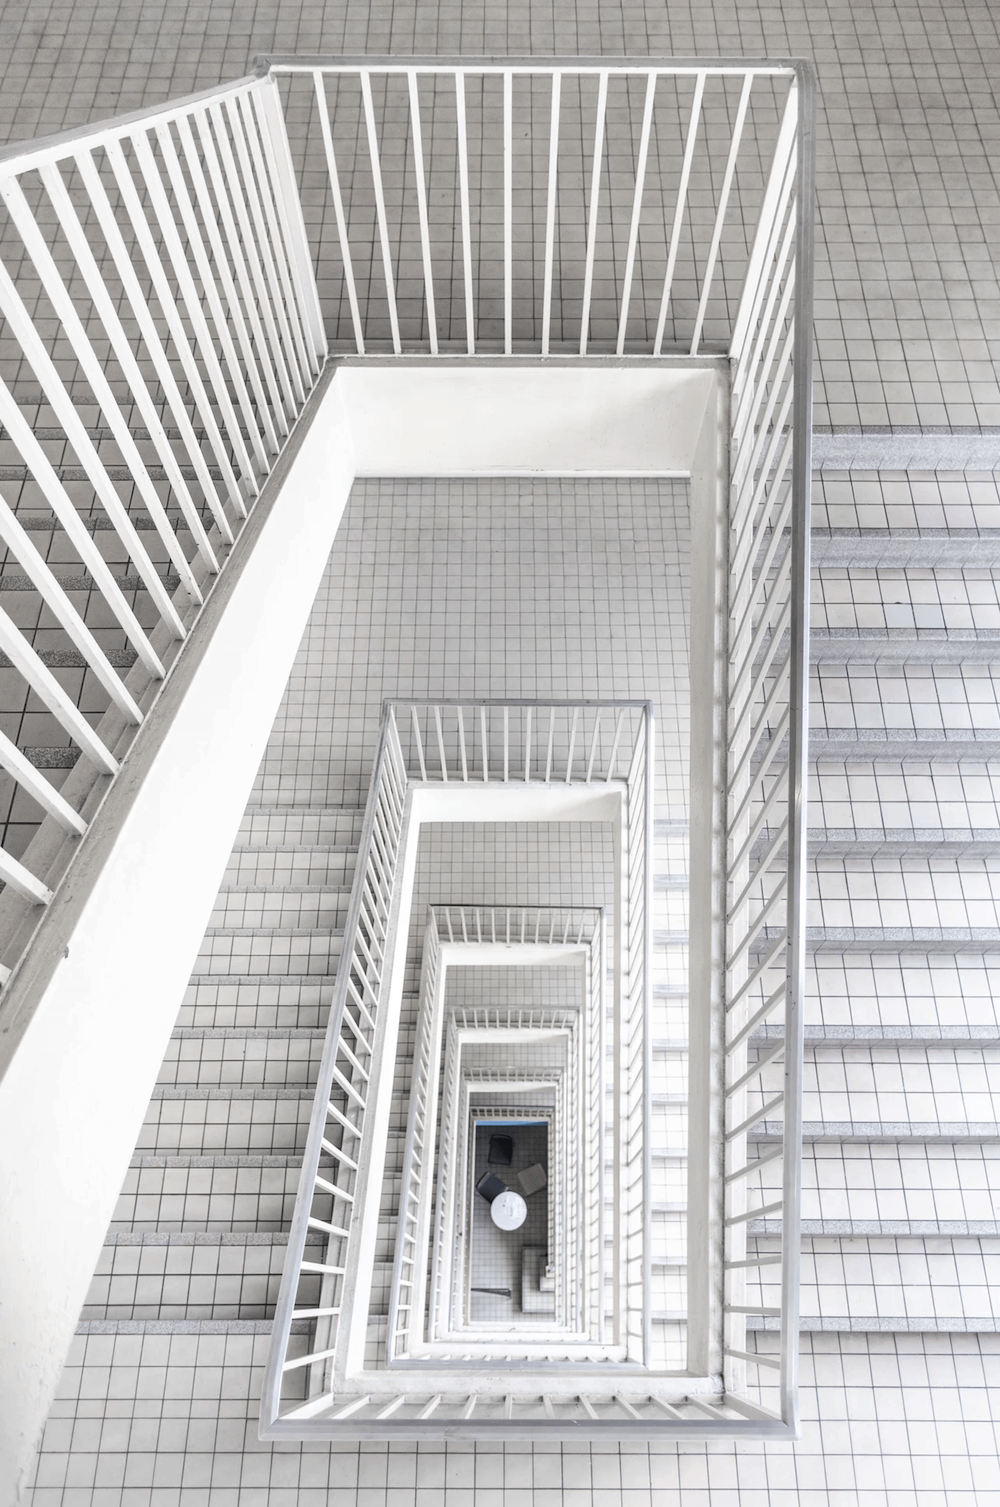 White tiled stairs inside a building.